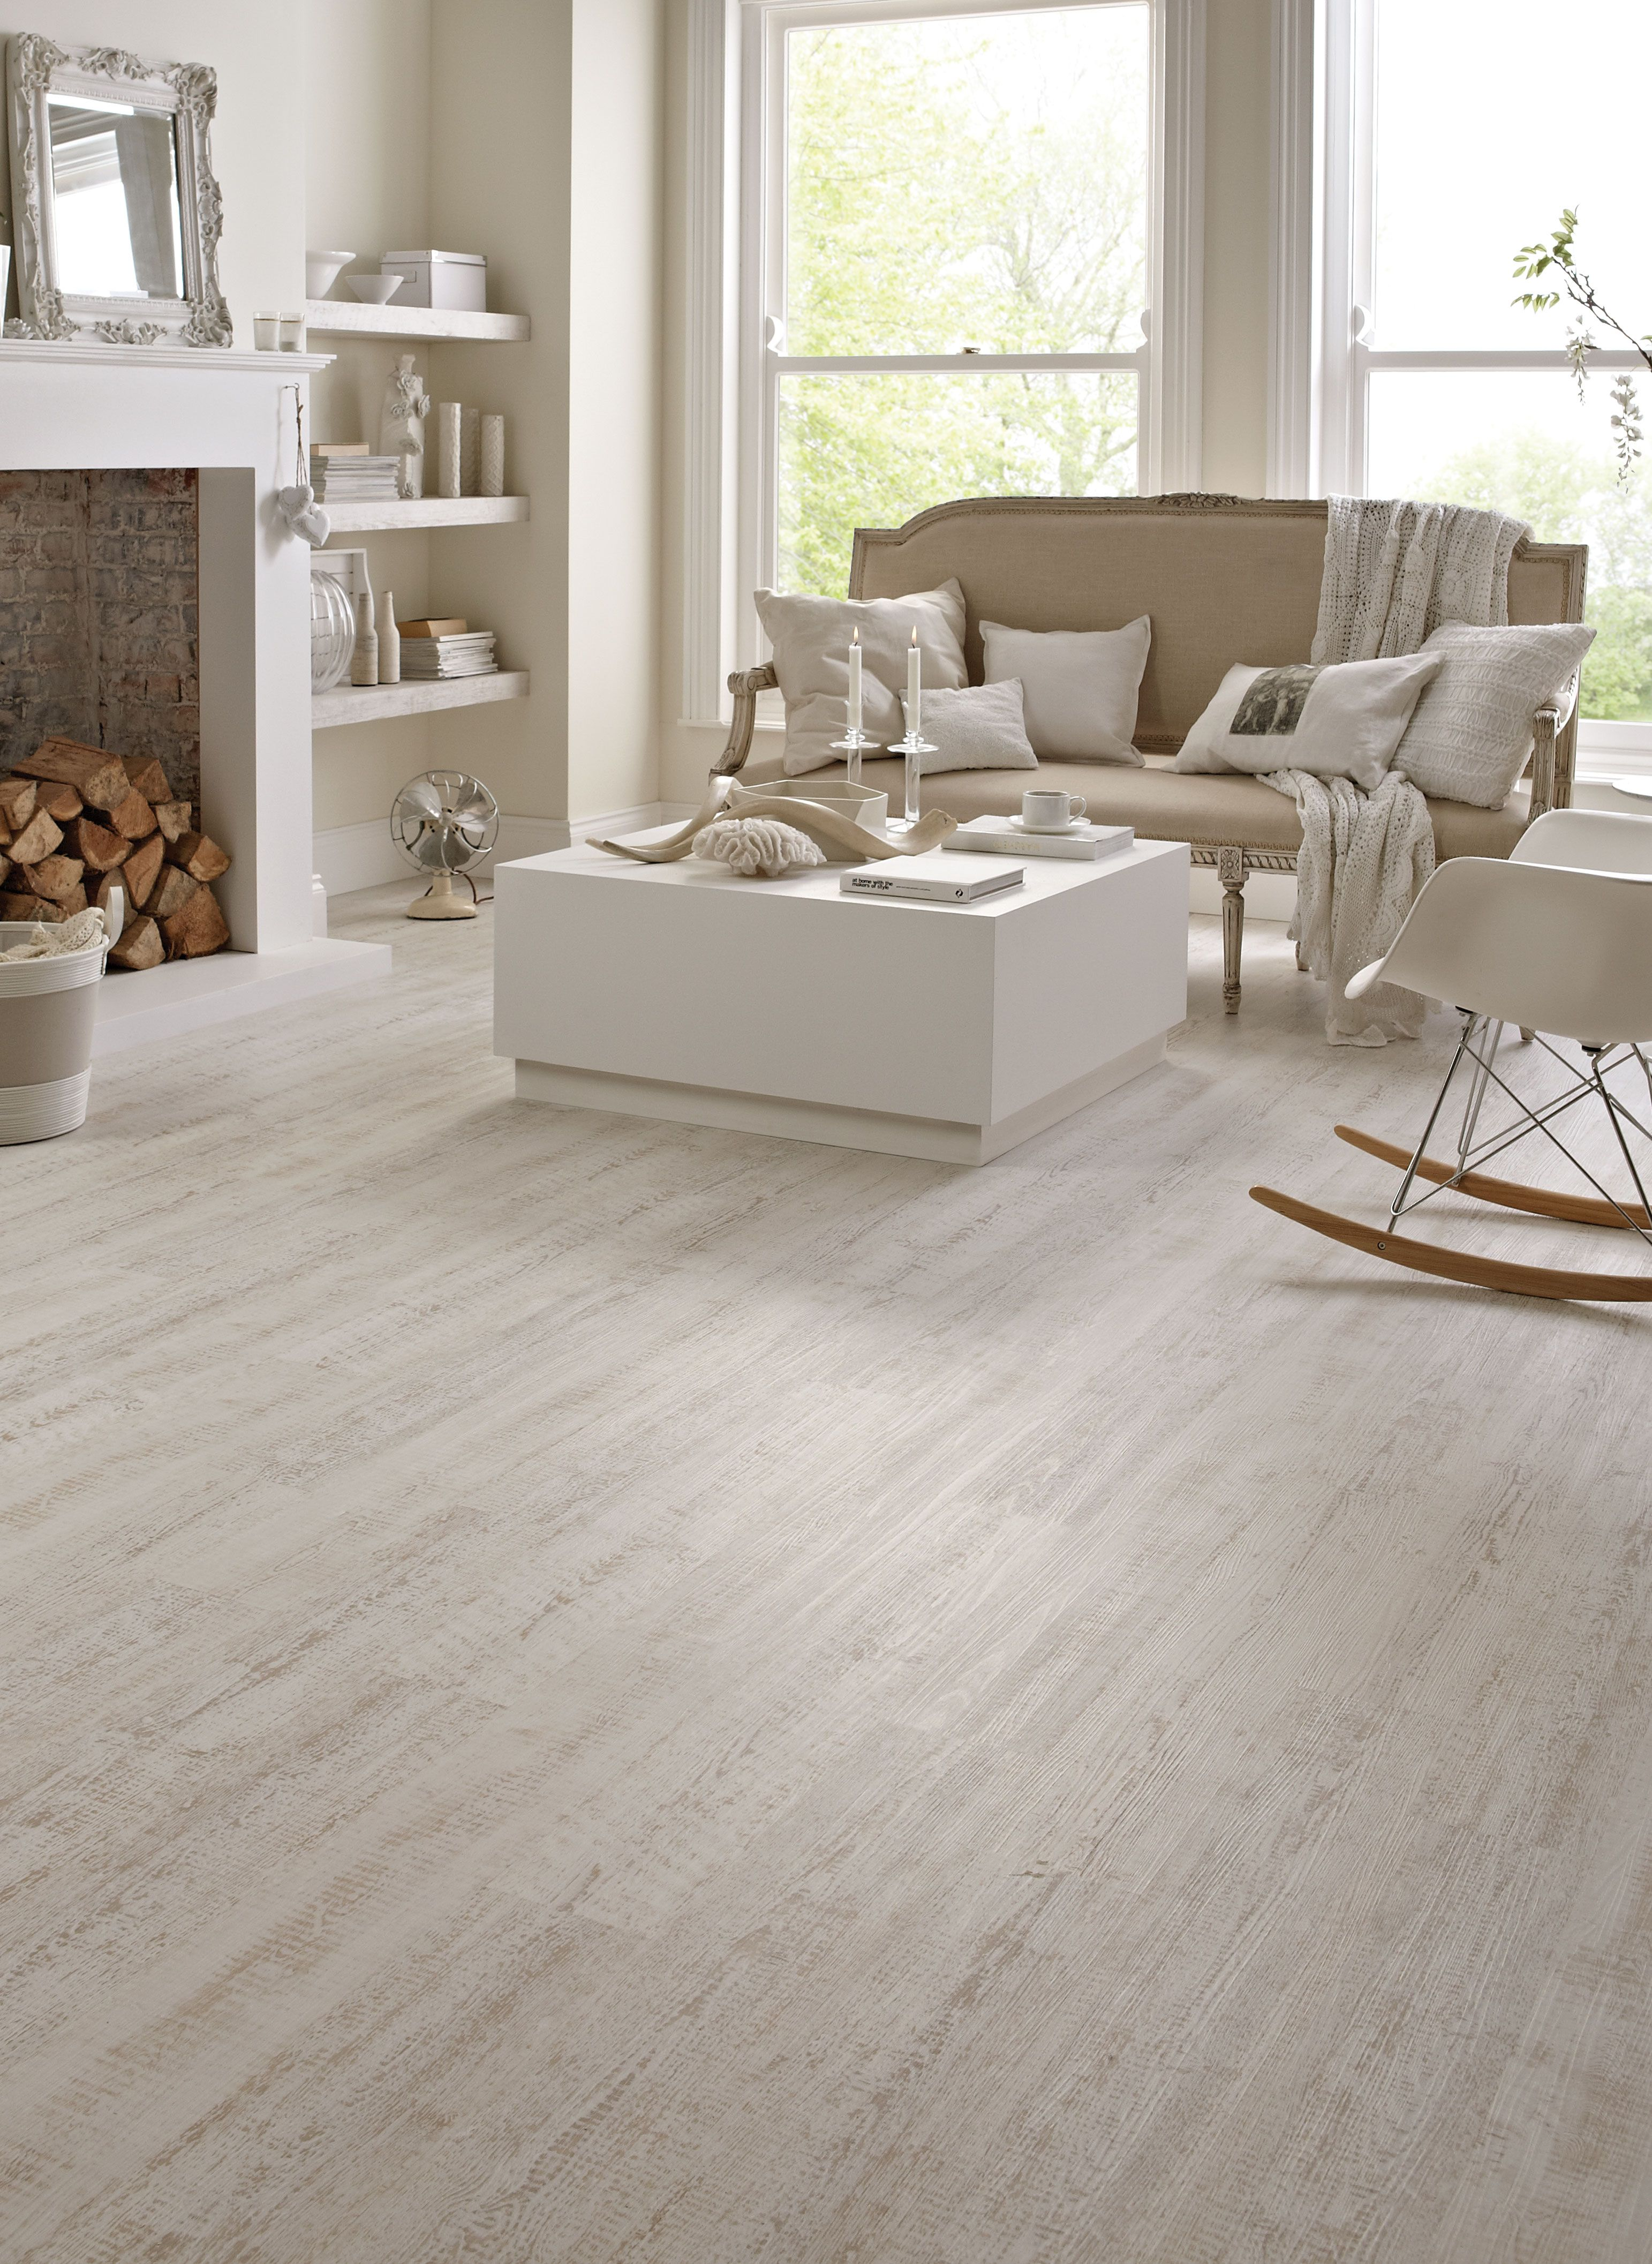 Karndean wood flooring white painted oak by for Bedroom flooring options